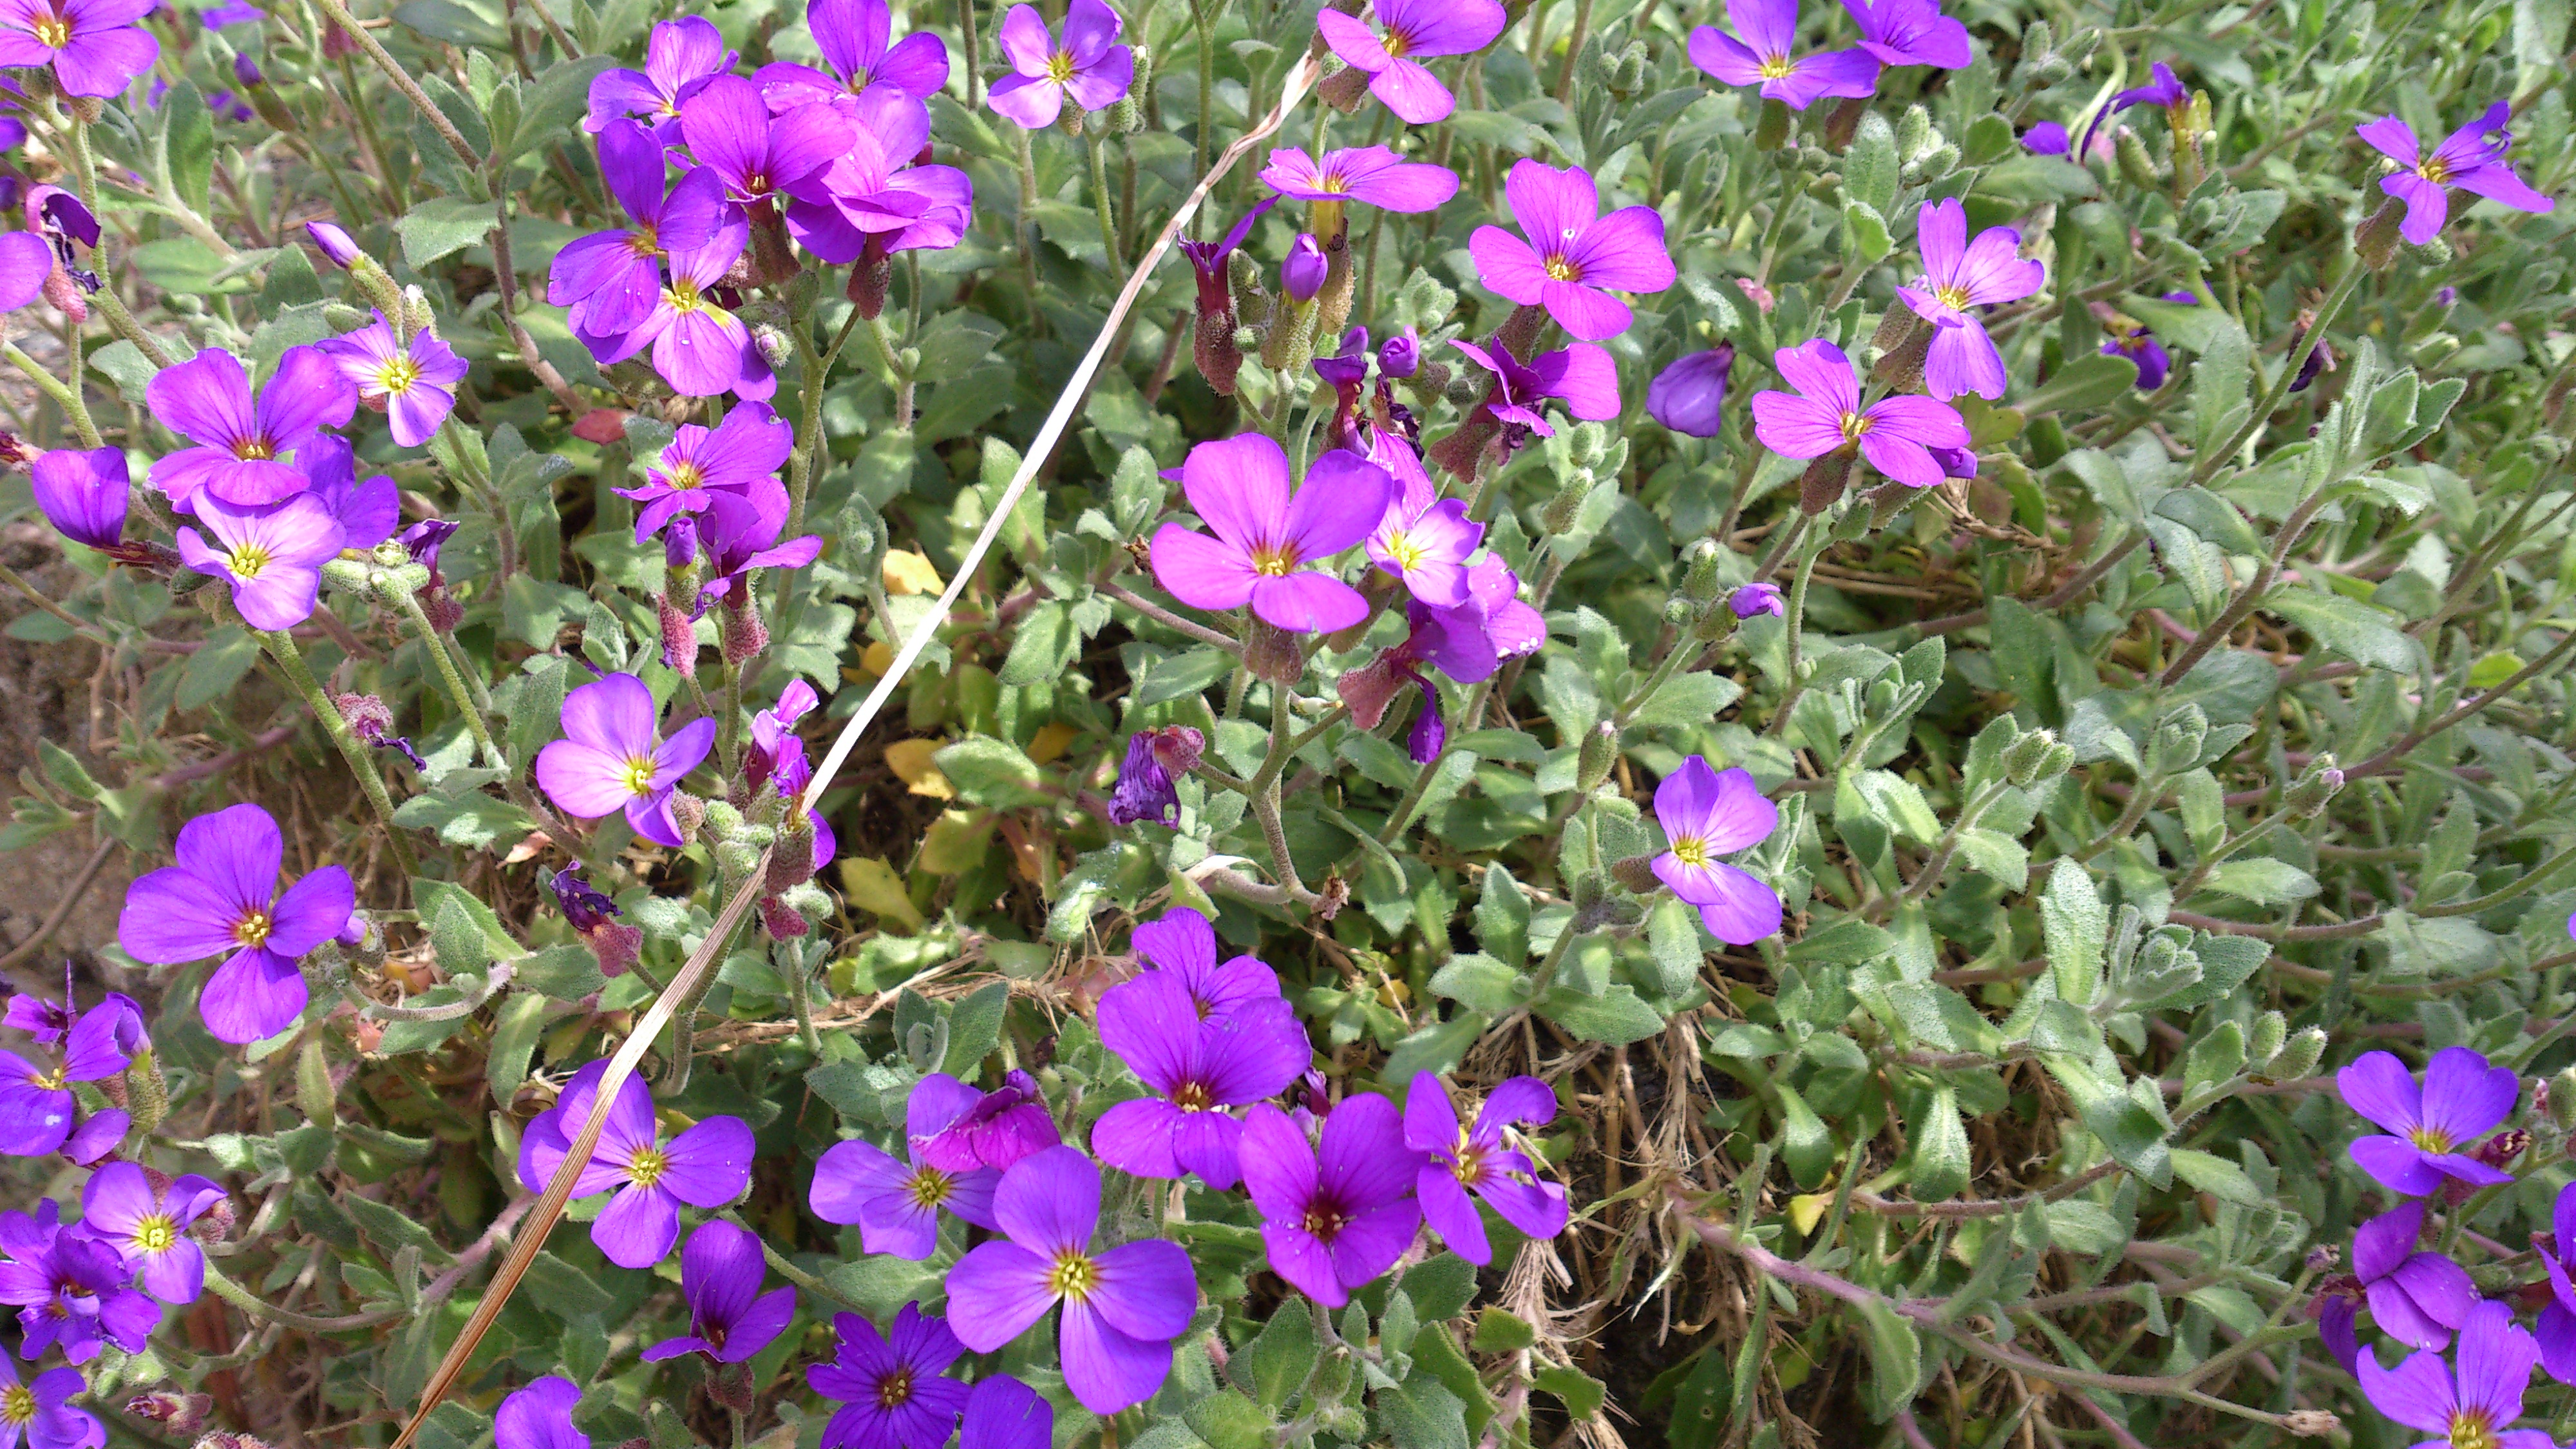 Pin Purple flowering bush pictures on Pinterest